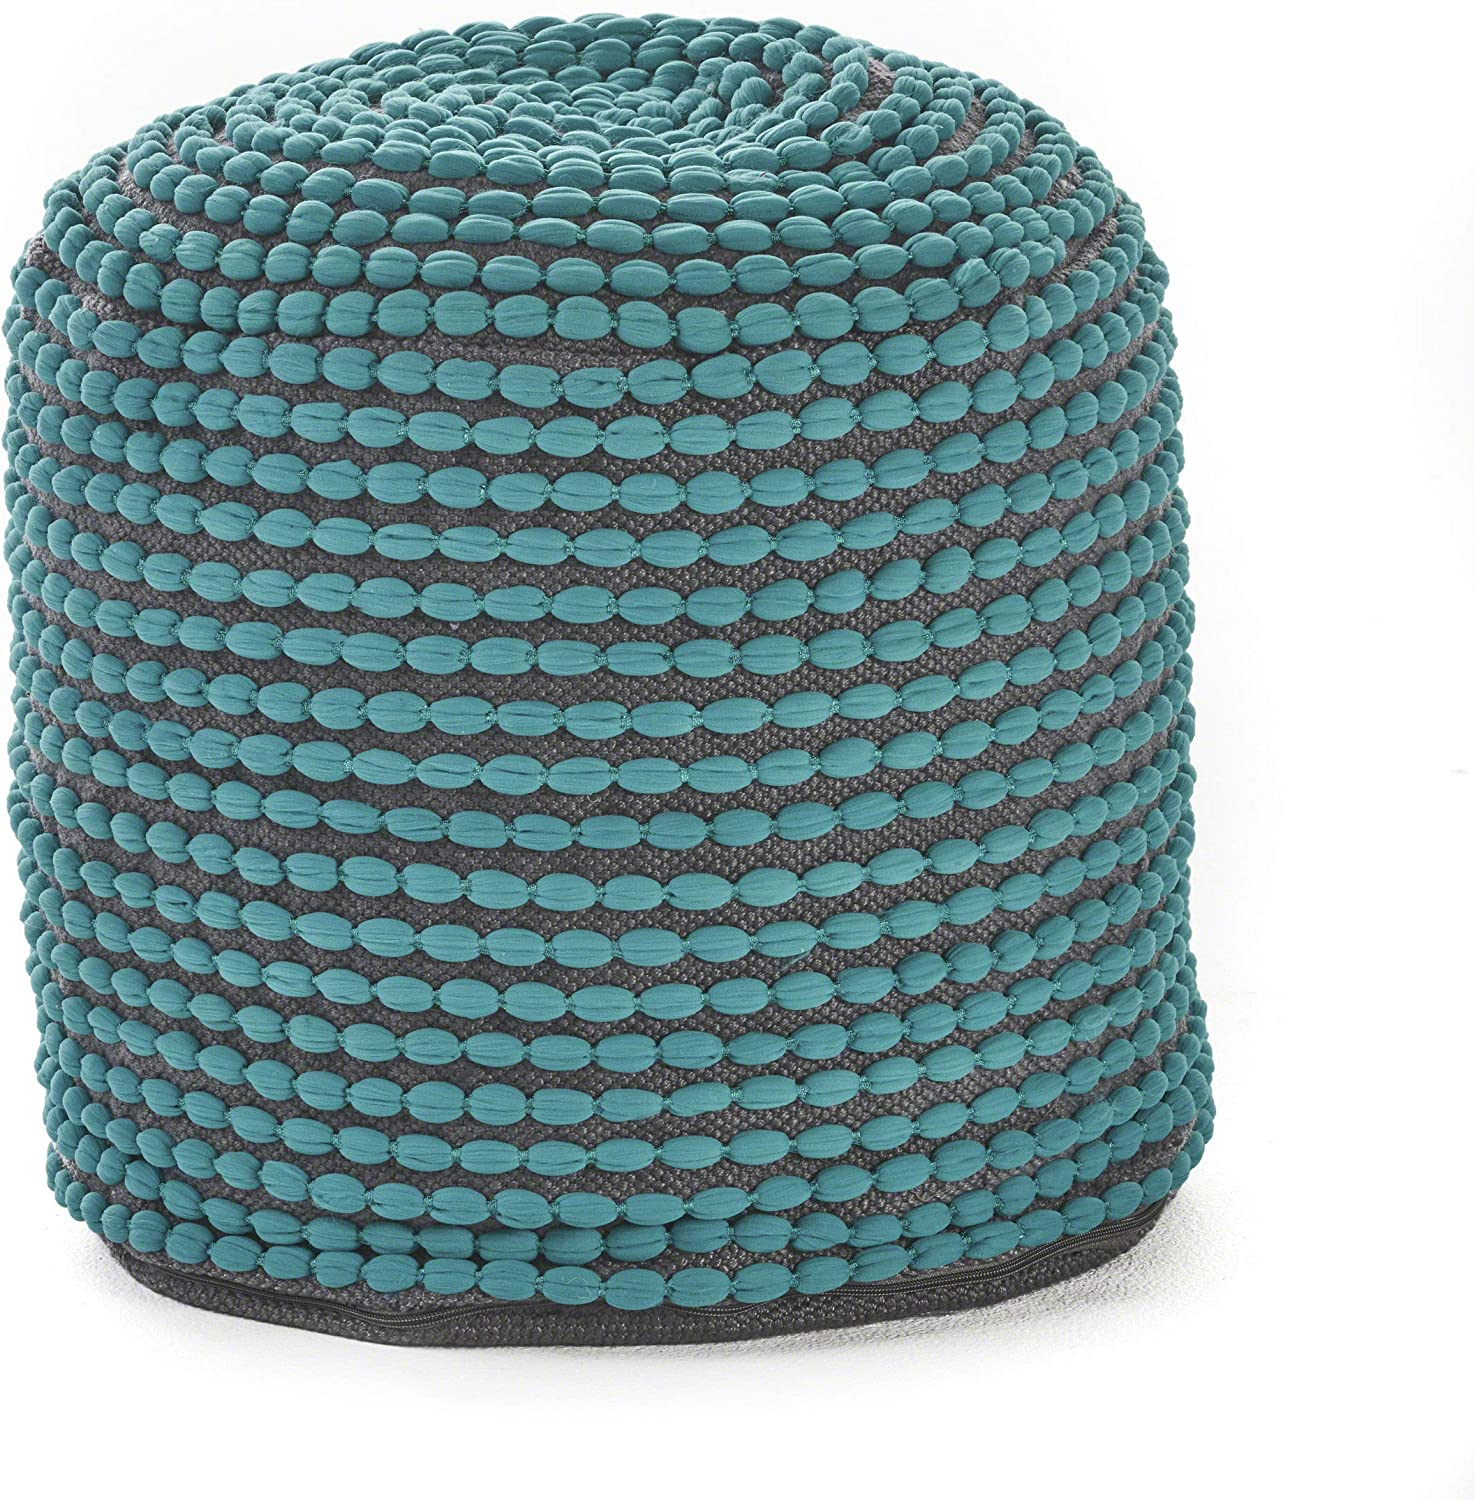 Christopher Knight Home Rococco Indoor Fabric Round Pouf Ottoman, Turquoise